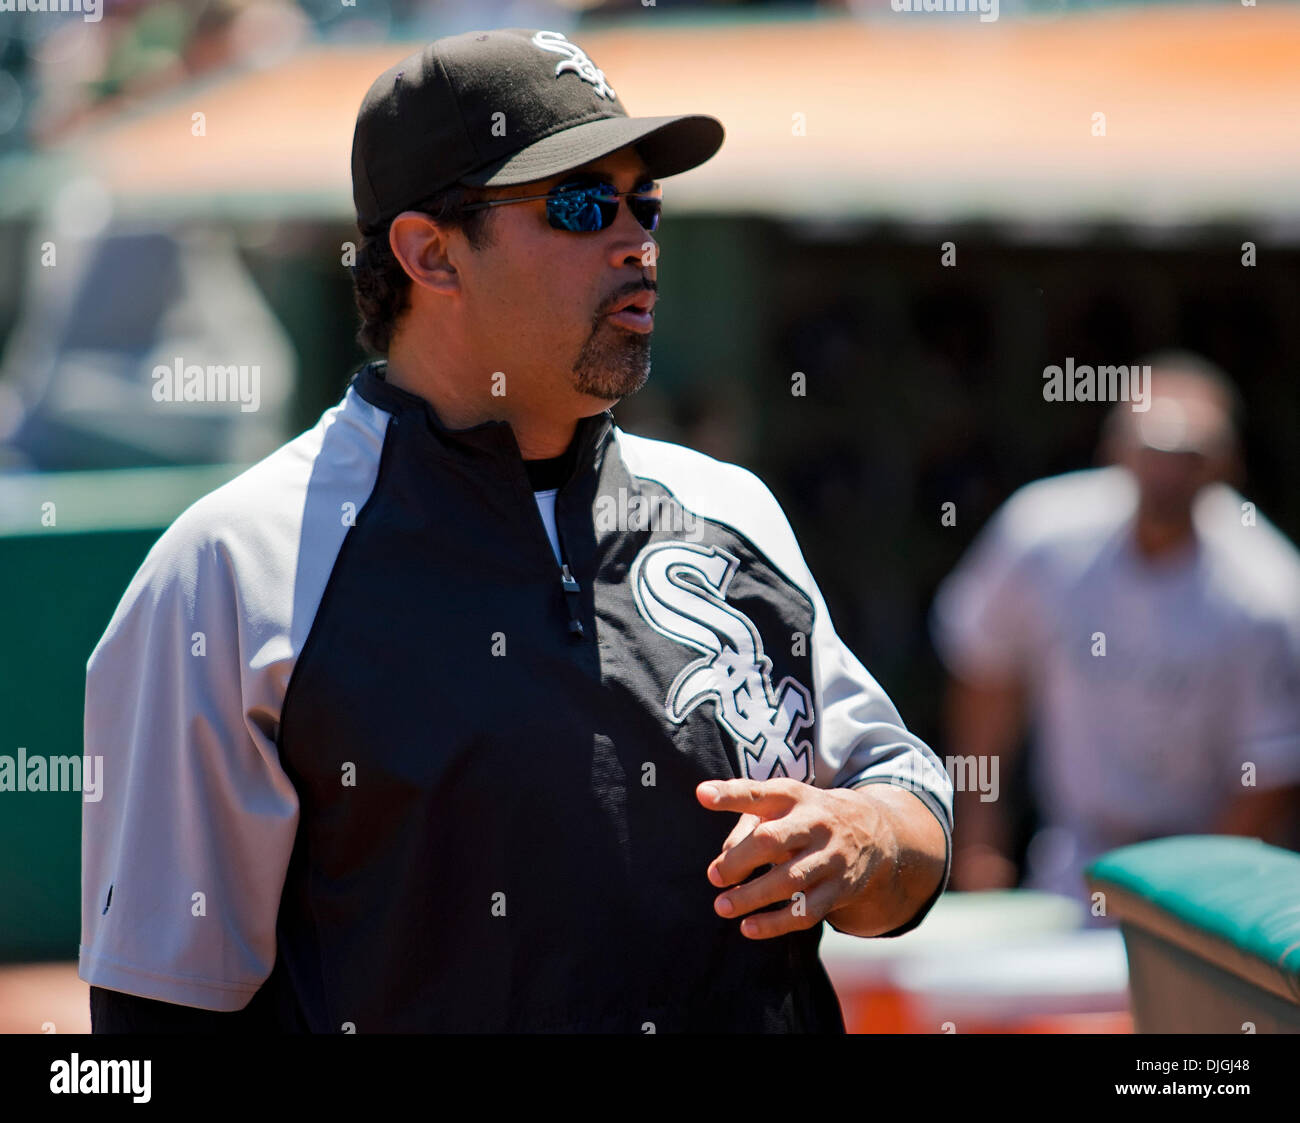 July 24, 2010 - Oakland, CA, United States of America - July 24, 2010: White Sox Manager Ozzie Guillen  prior to the game between the Oakland A's and the Chicago White Sox at the Oakland-Alameda County Coliseum in Oakland CA. The A's defeated the White Sox 10-2. Mandatory Credit: Damon Tarver/ Southcreek Global. (Credit Image: © Southcreek Global/ZUMApress.com) - Stock Image